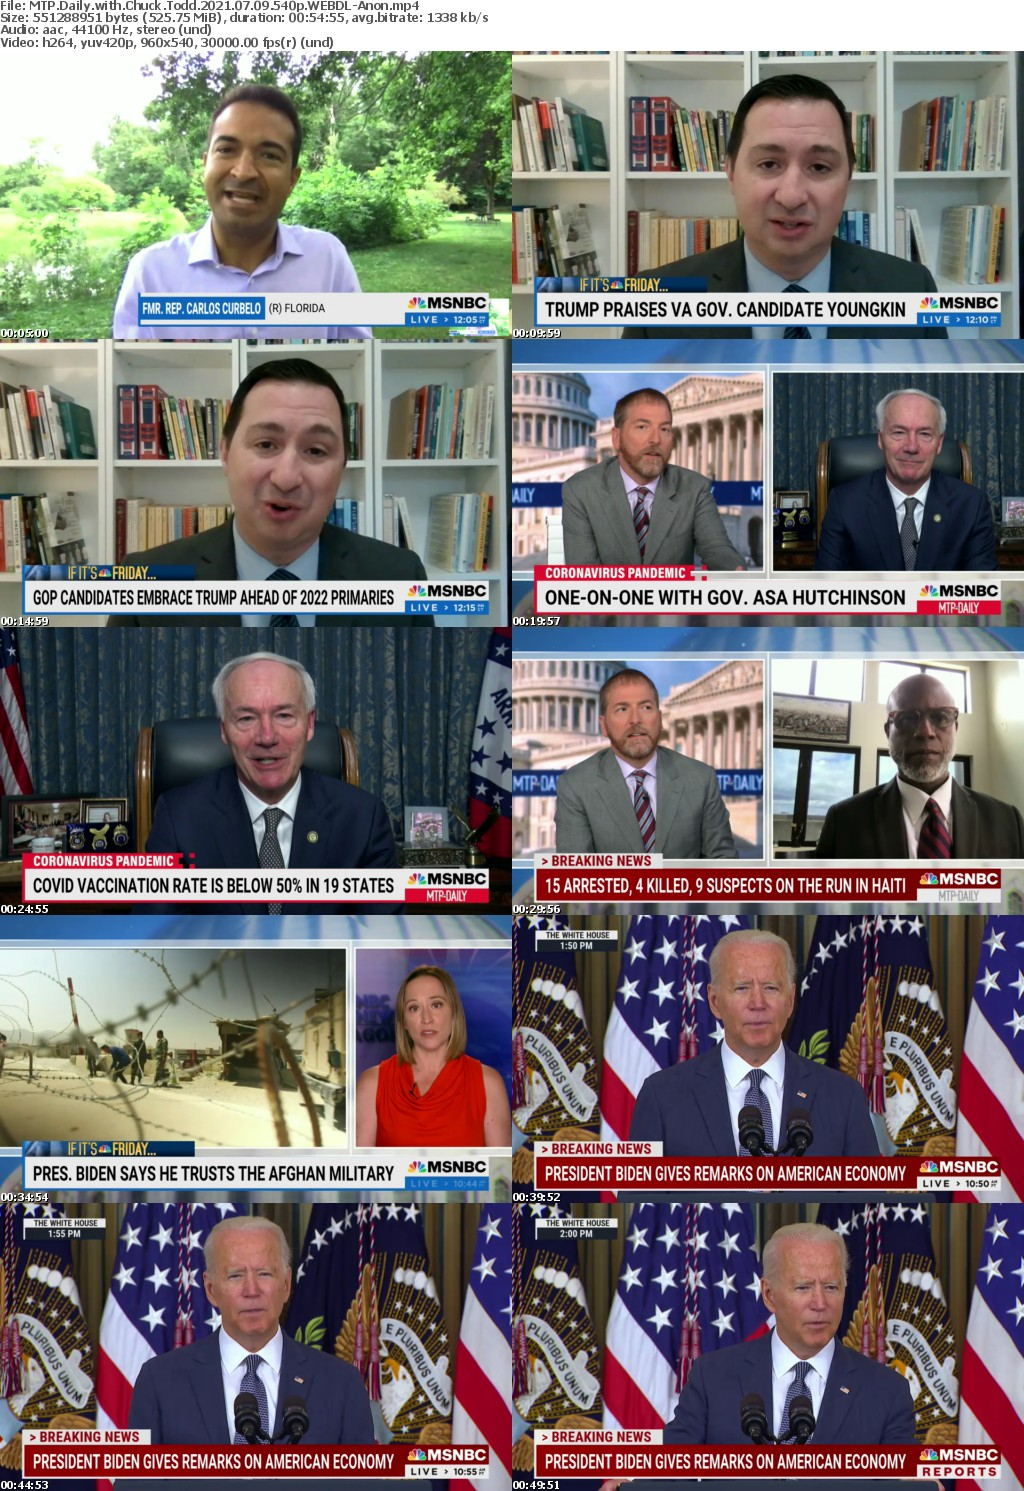 MTP Daily with Chuck Todd 2021 07 09 540p WEBDL-Anon